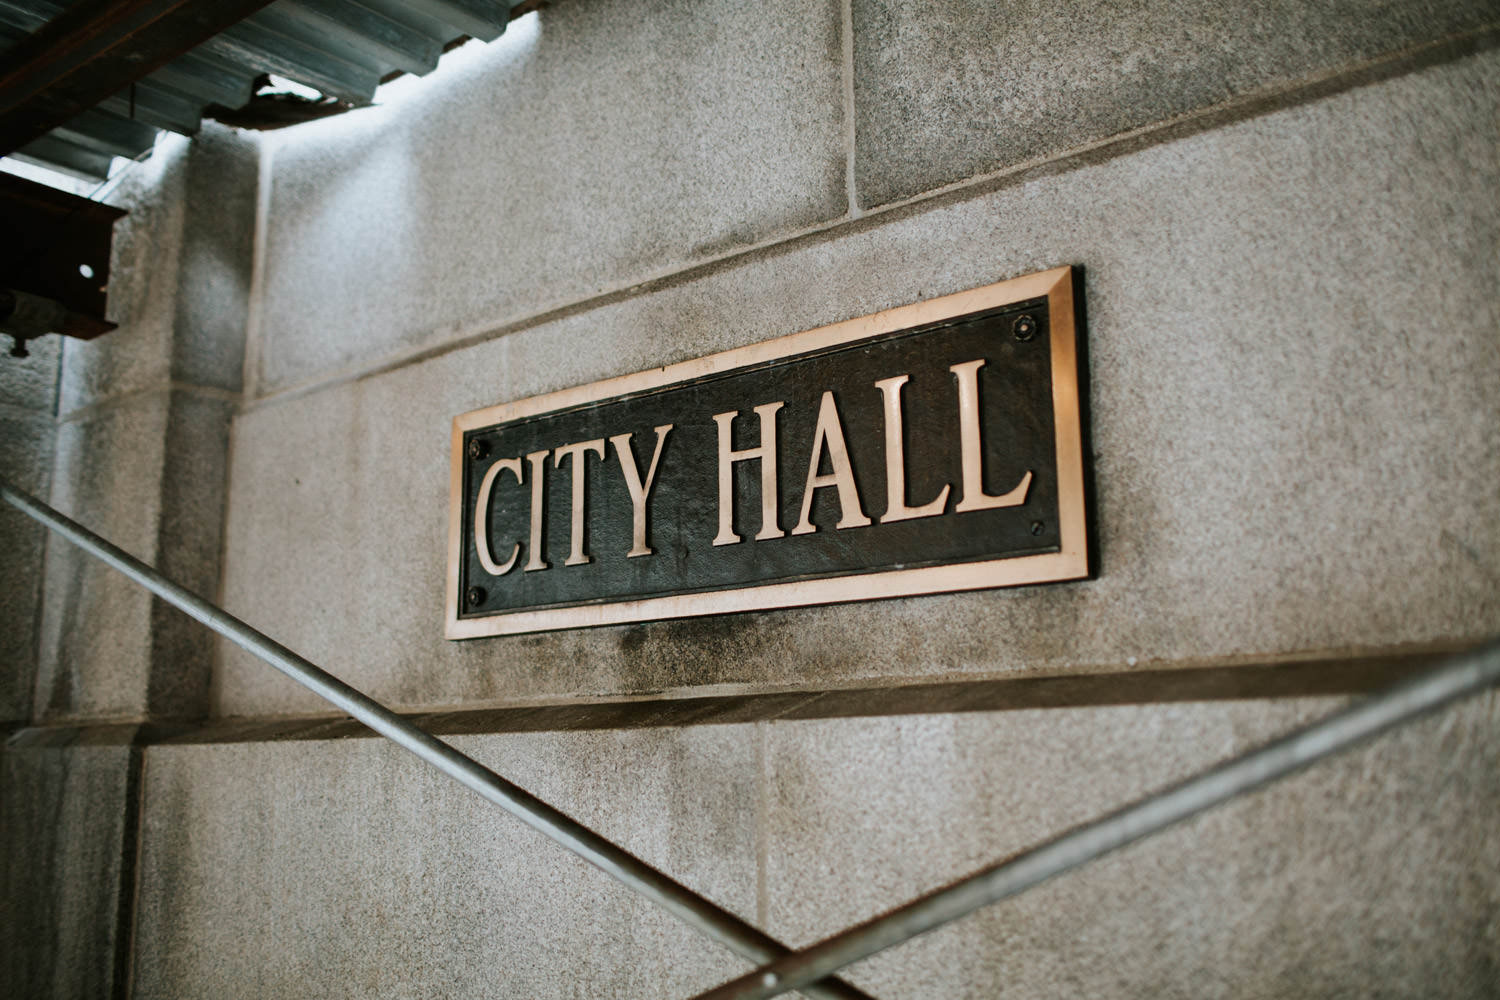 Chicago city hall sign. Photographed before the wedding day